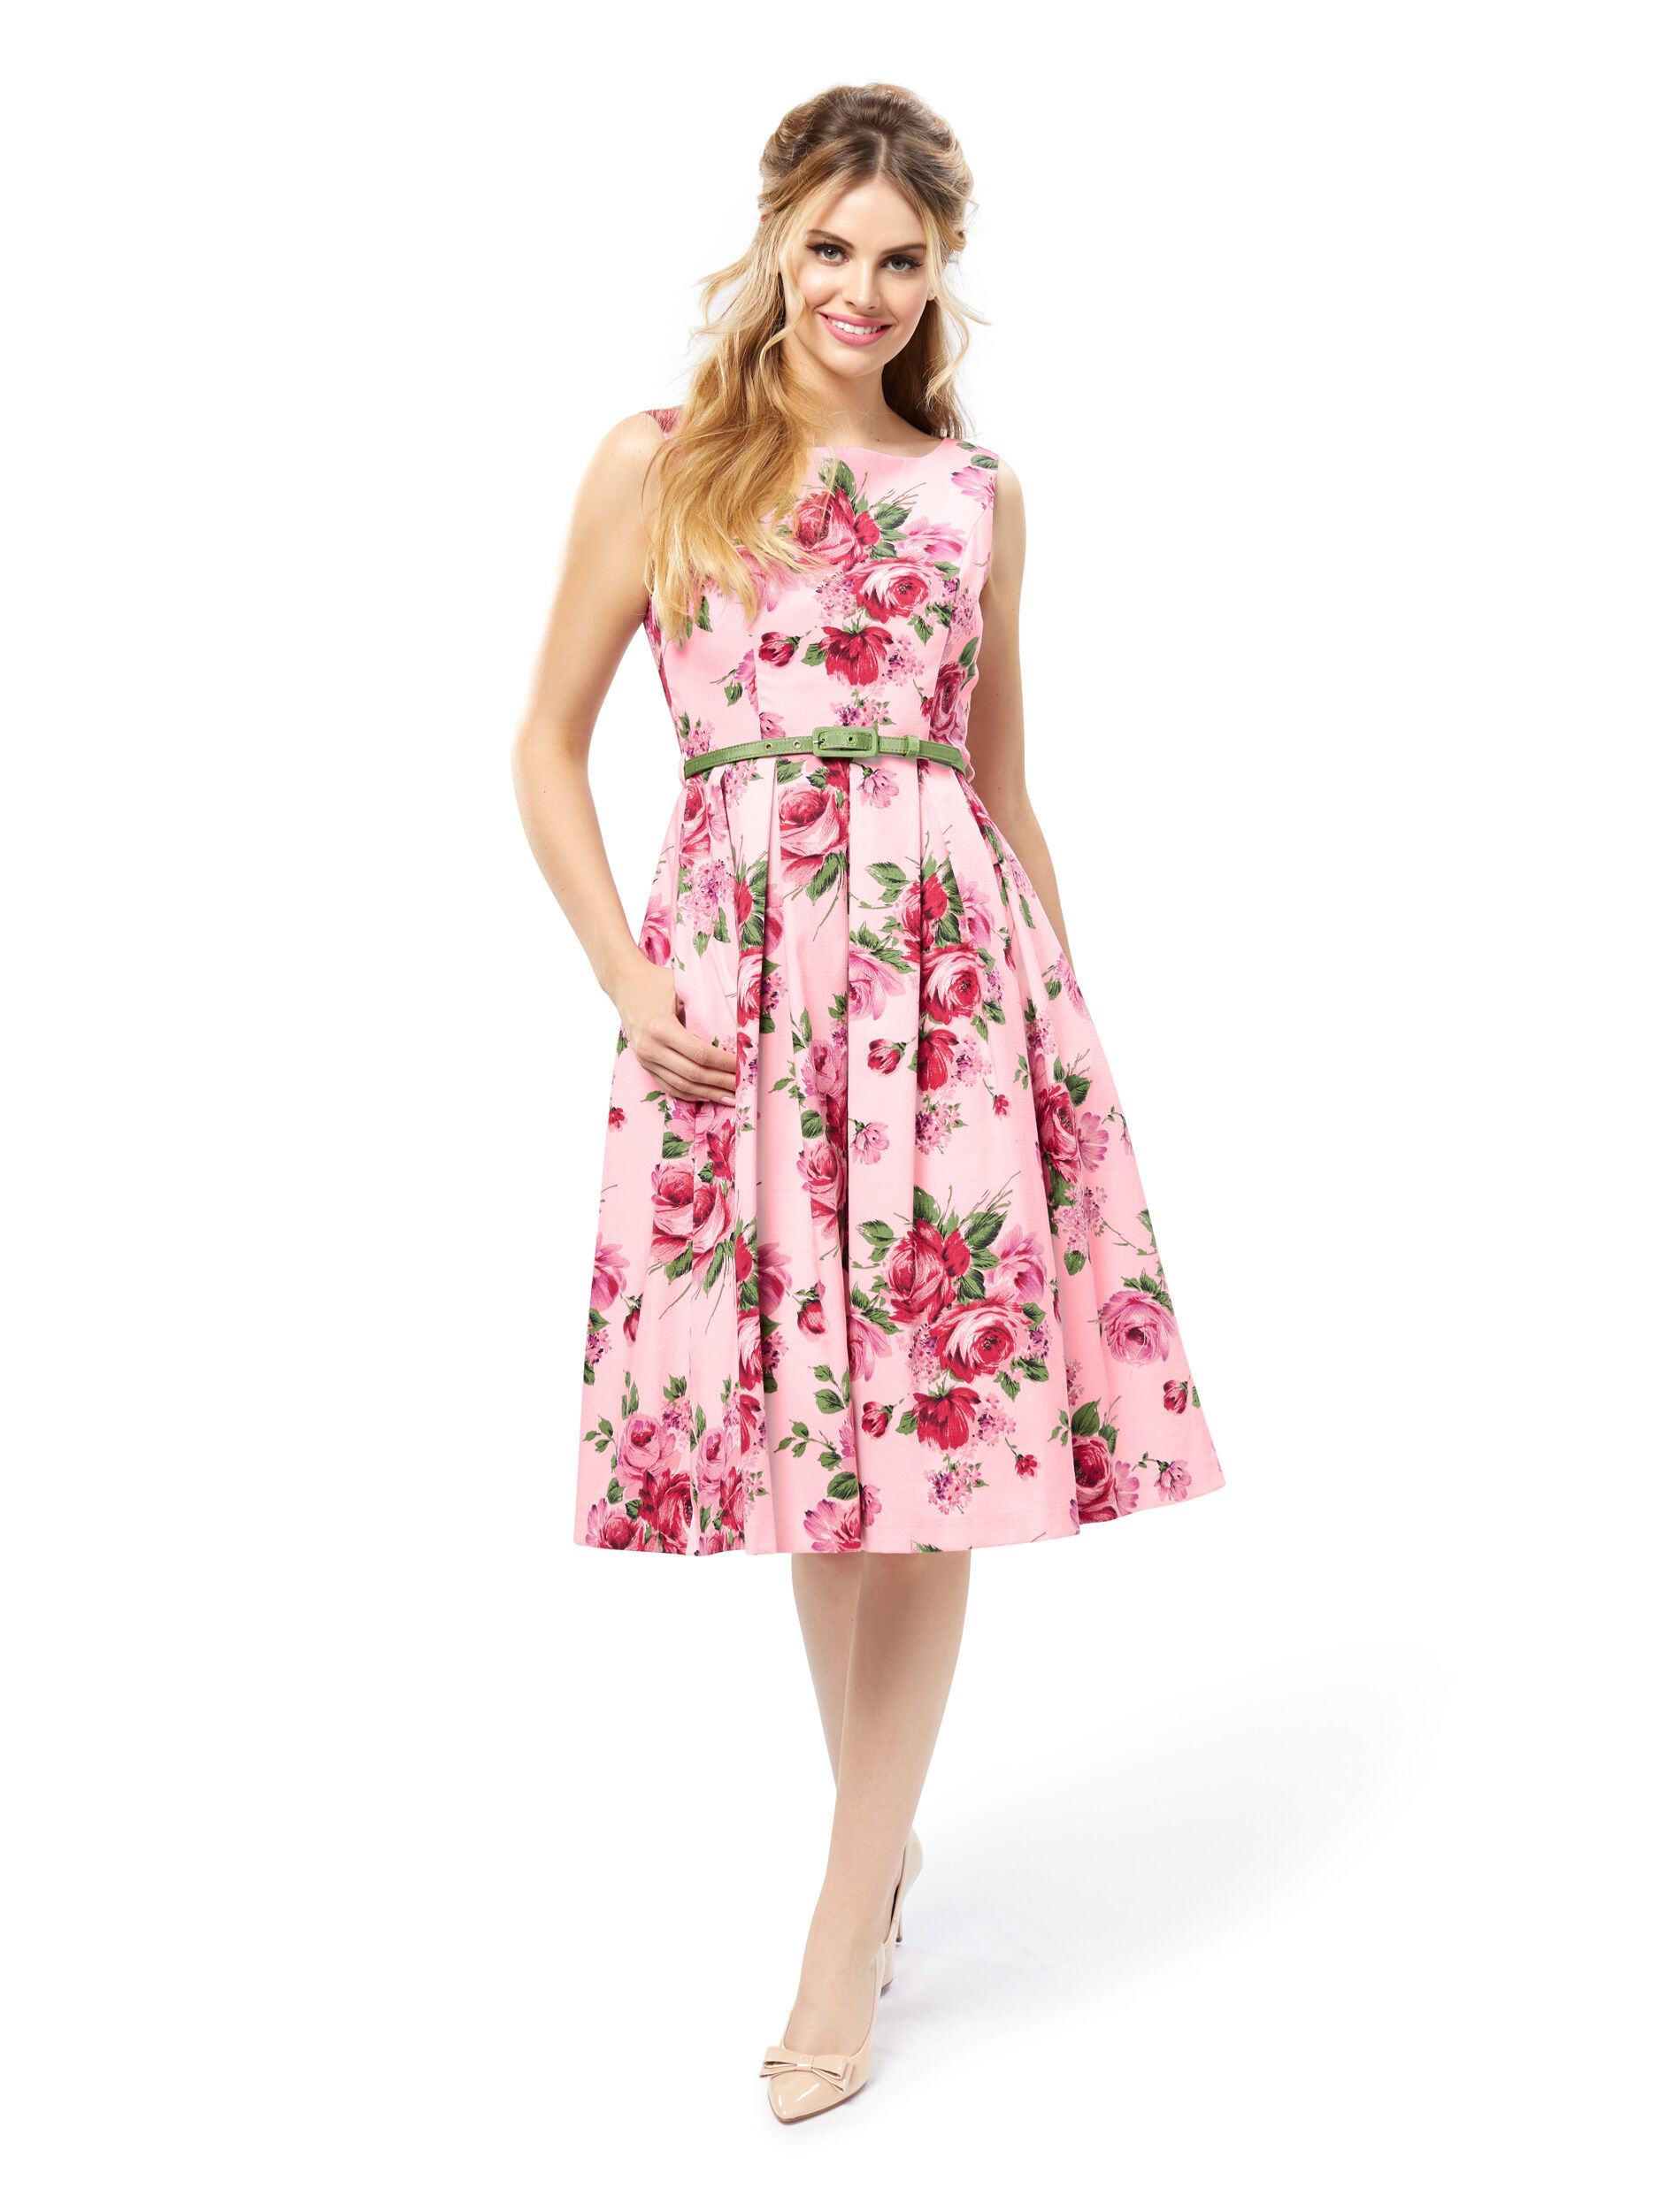 Rose Waltz Prom Dress | Shop Dresses Online from Review